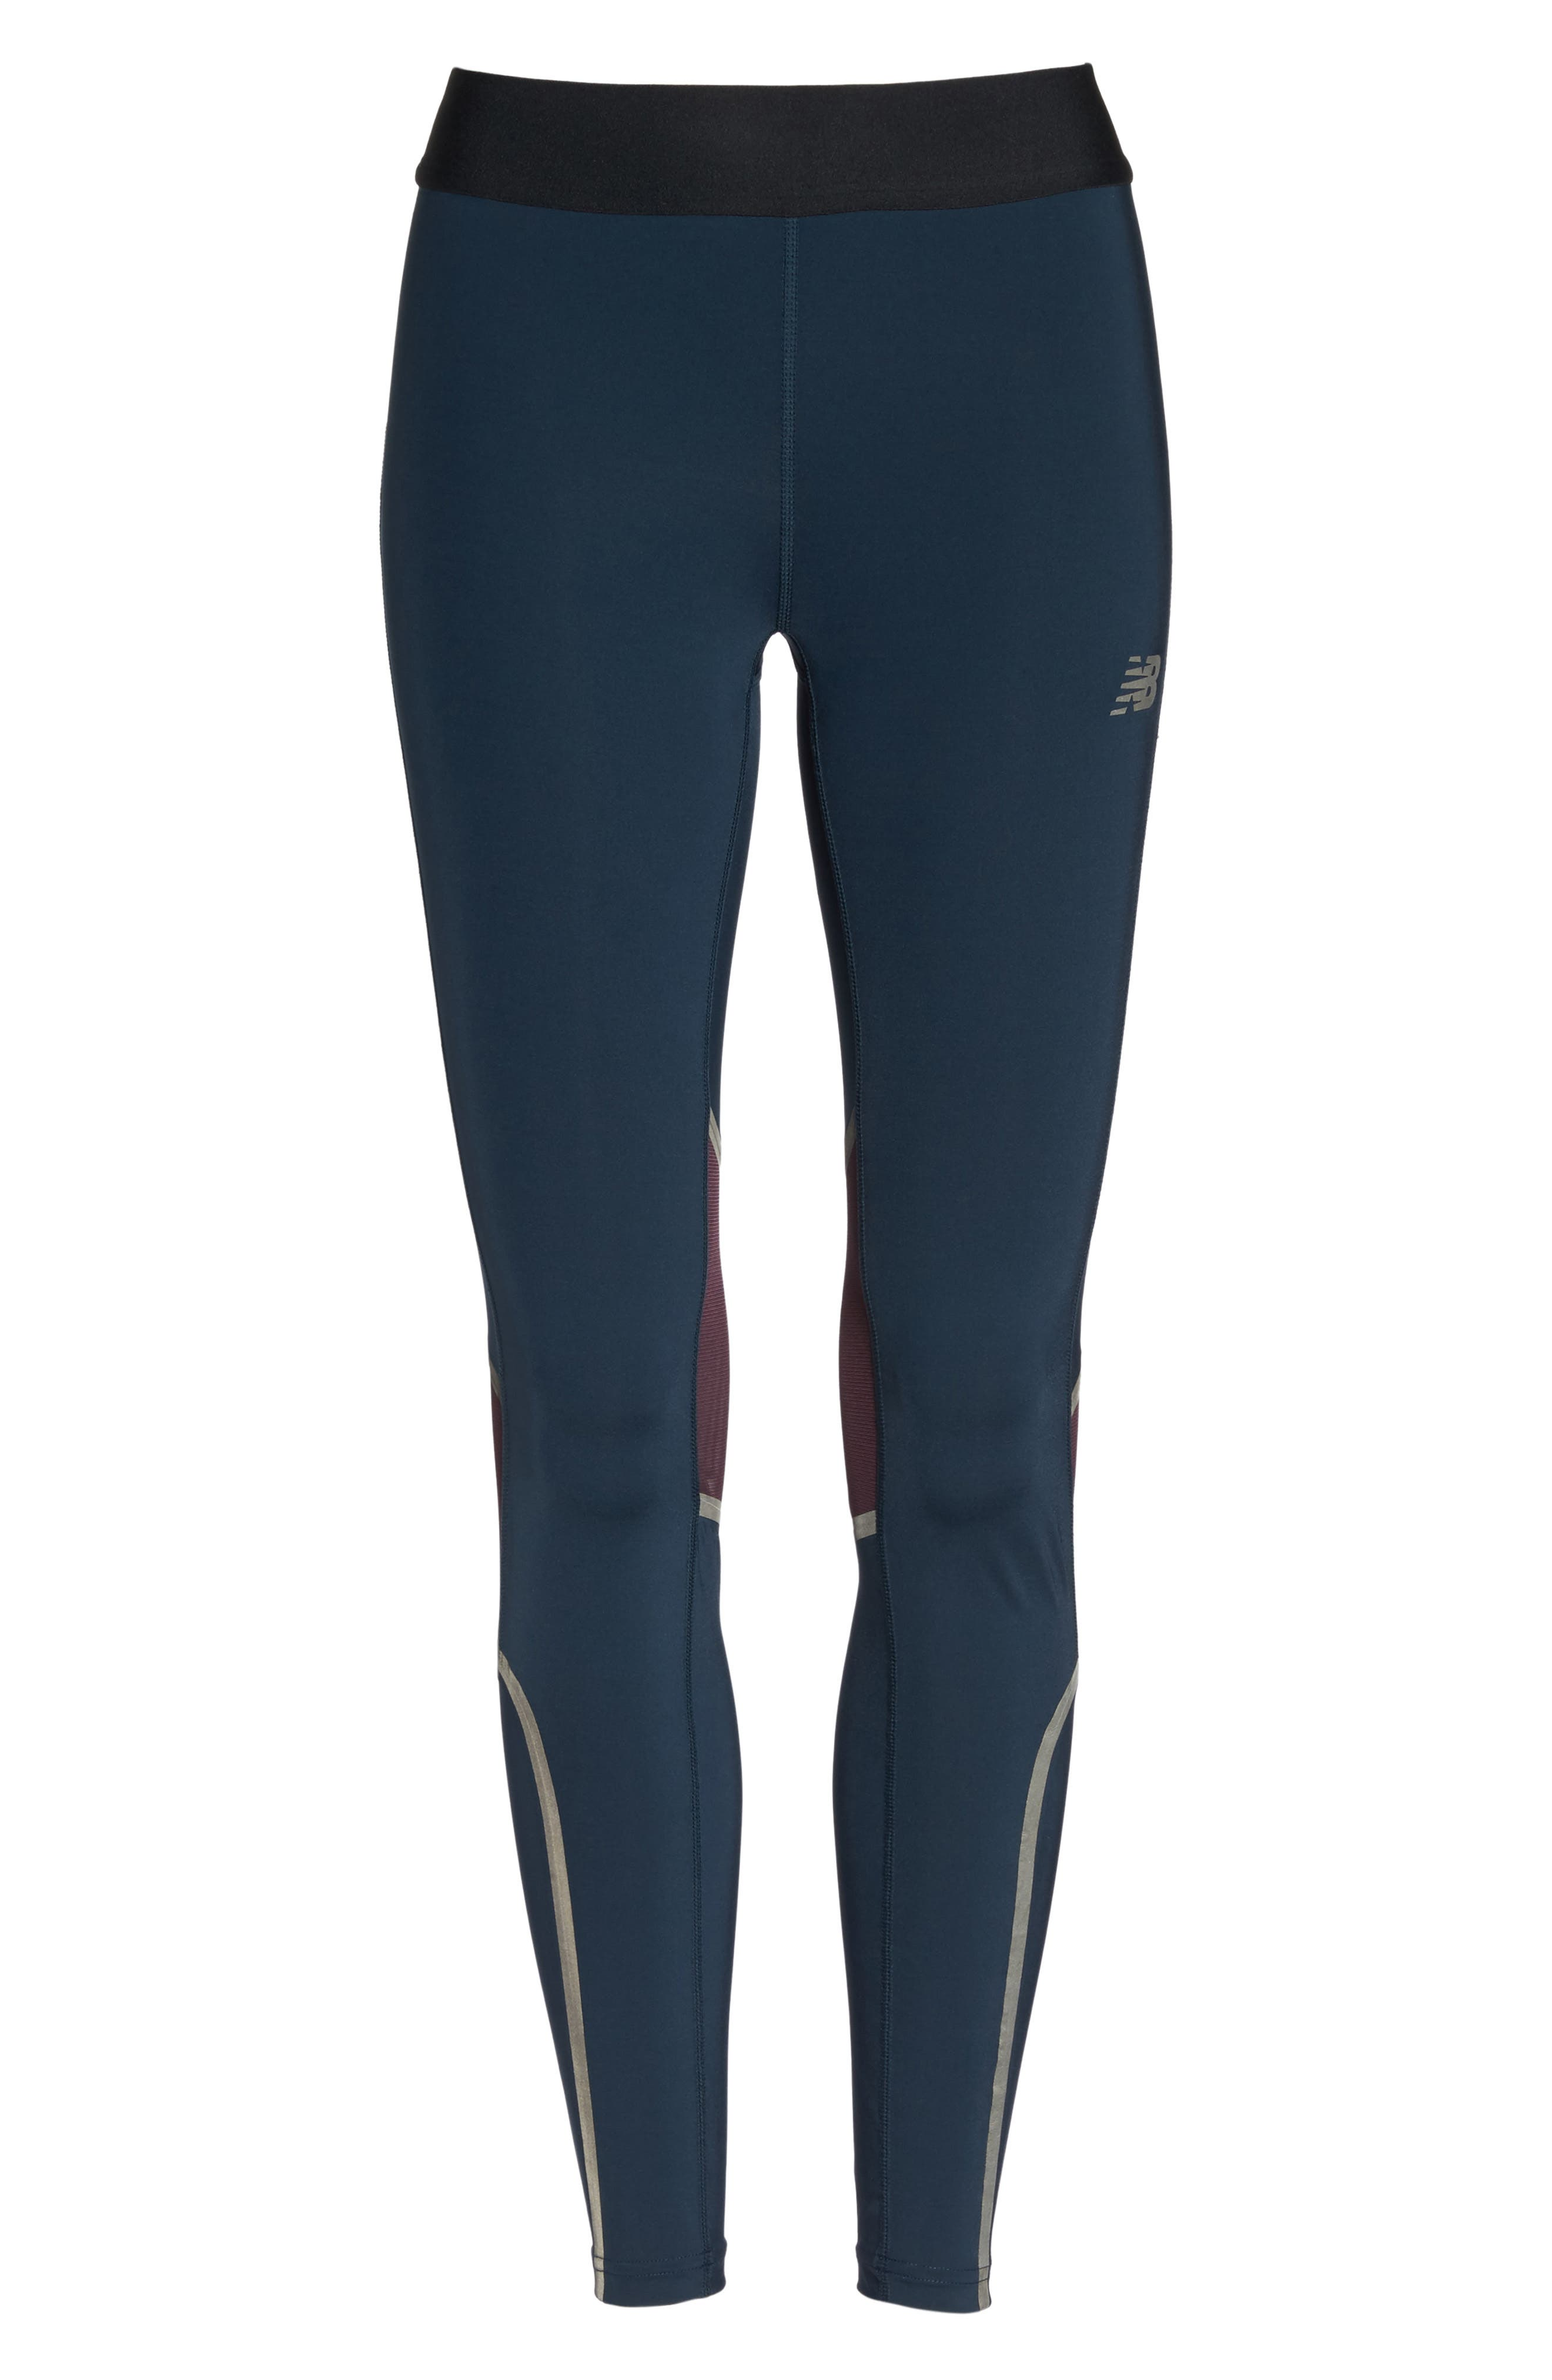 Precision Running Tights,                             Alternate thumbnail 7, color,                             424